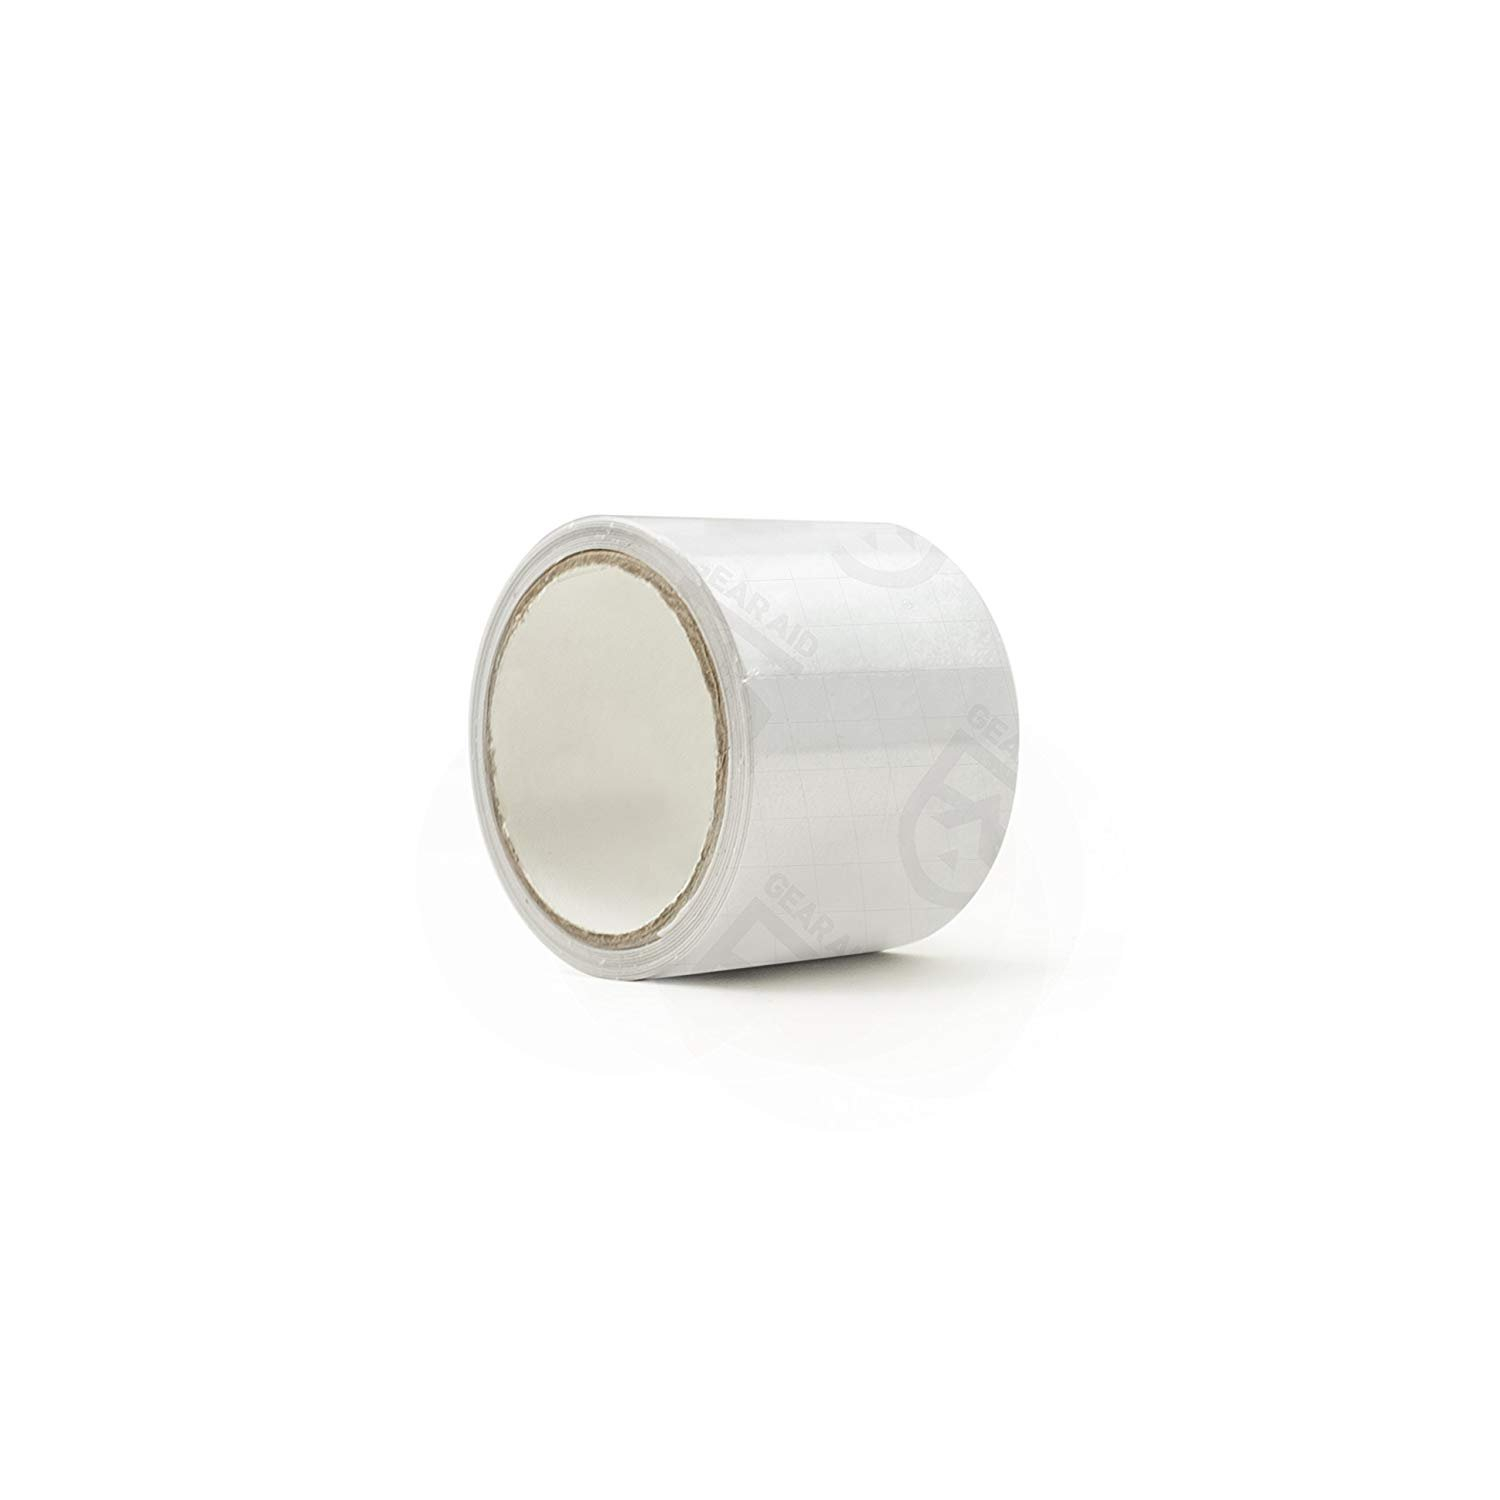 Tenacious Clean Adhesive Repair Tape Roll - Clear